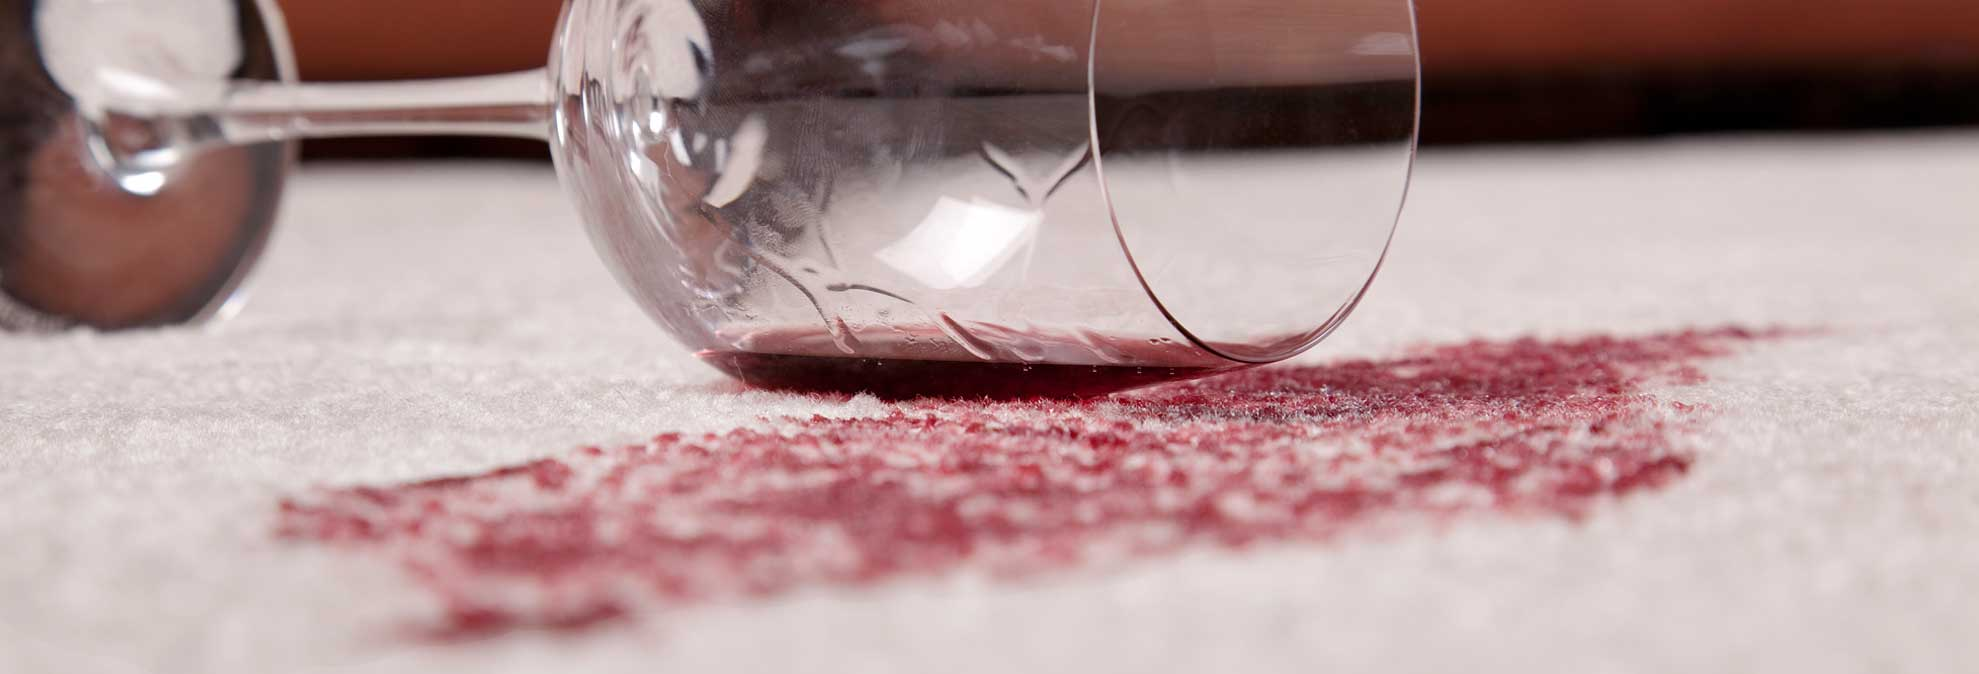 Best Carpet Stain Remover Buying Guide Consumer Reports